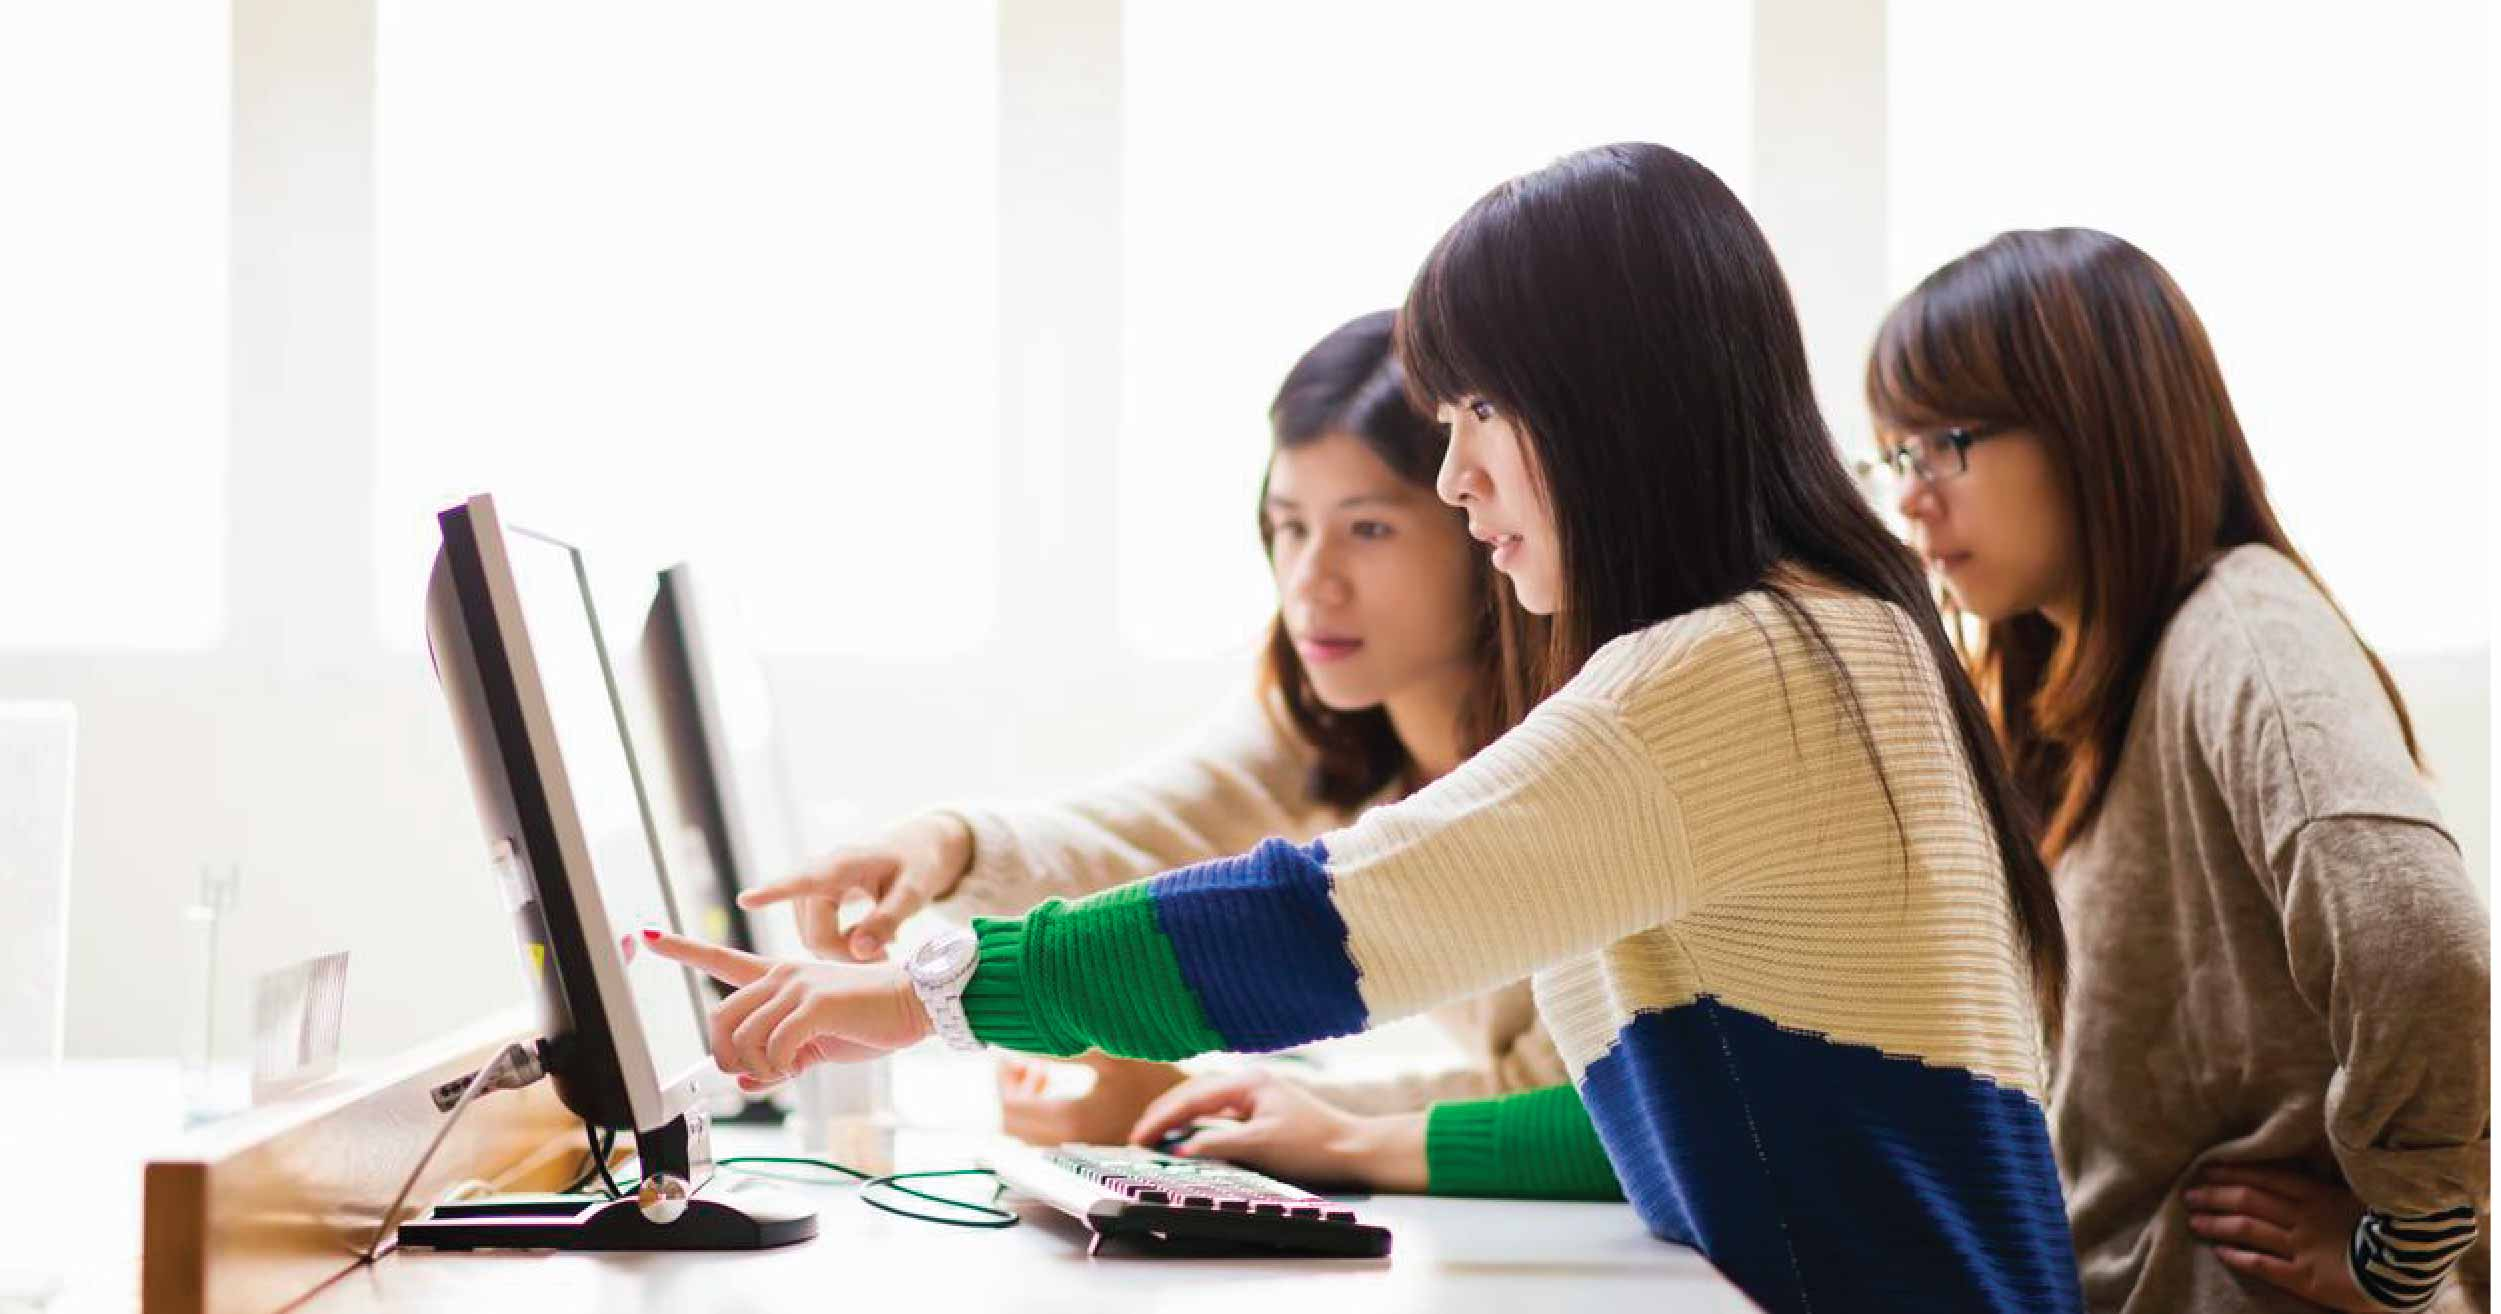 Remote proctoring - allowing invigilators to conduct online examinations securely and efficiently